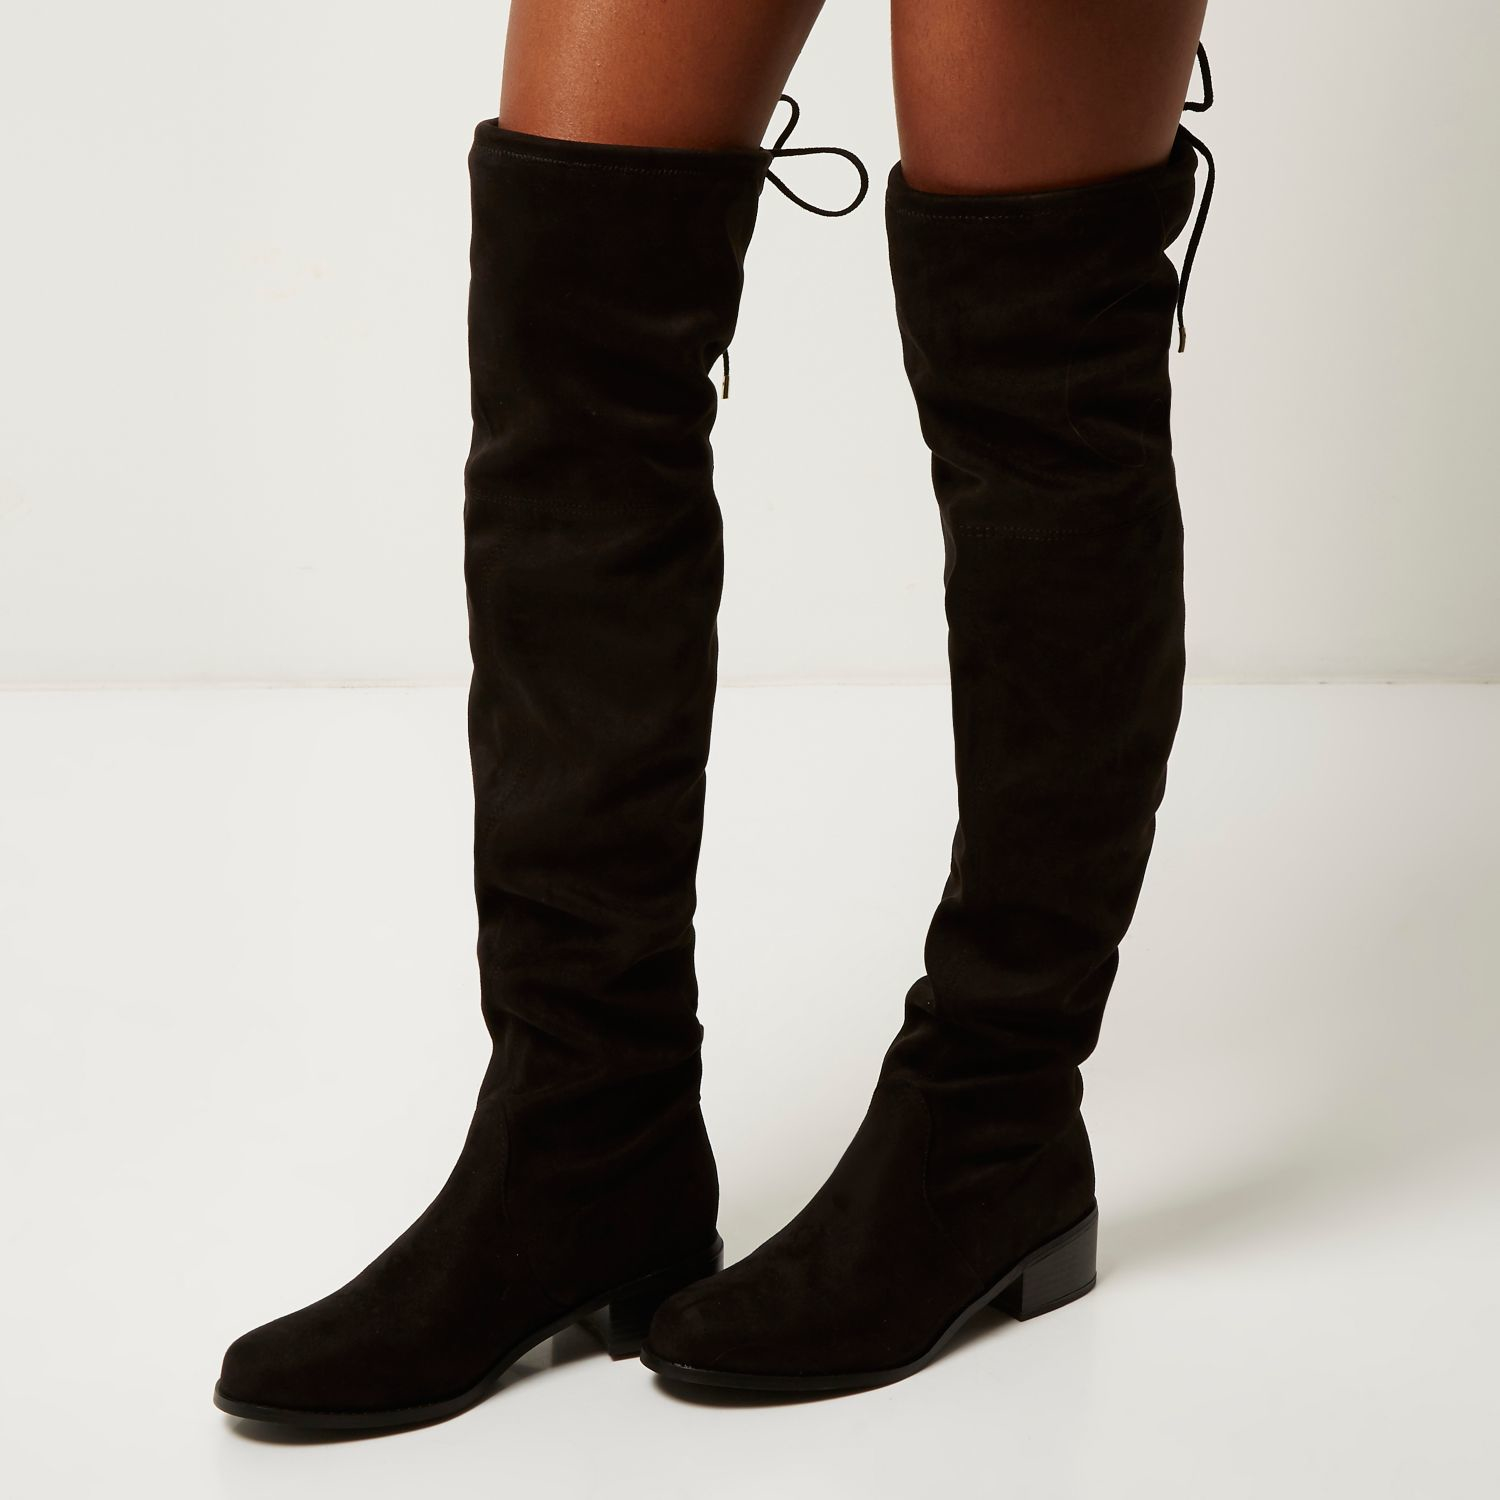 582dc47577 River Island Black Tie Back Over The Knee Boots in Black - Lyst